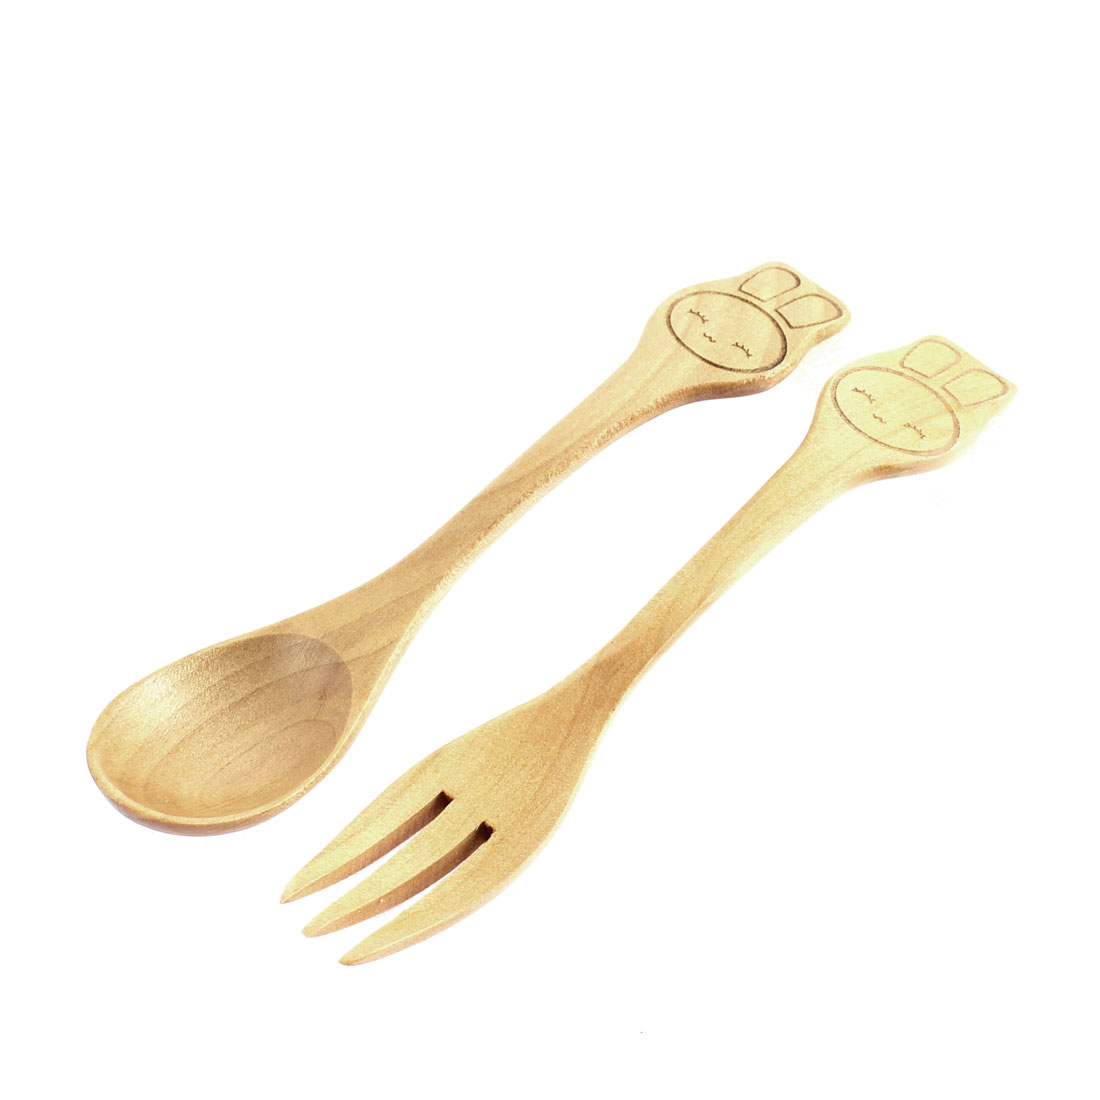 Household Travel Wooden Smiling Face Pattern Food Fork Spoon Set